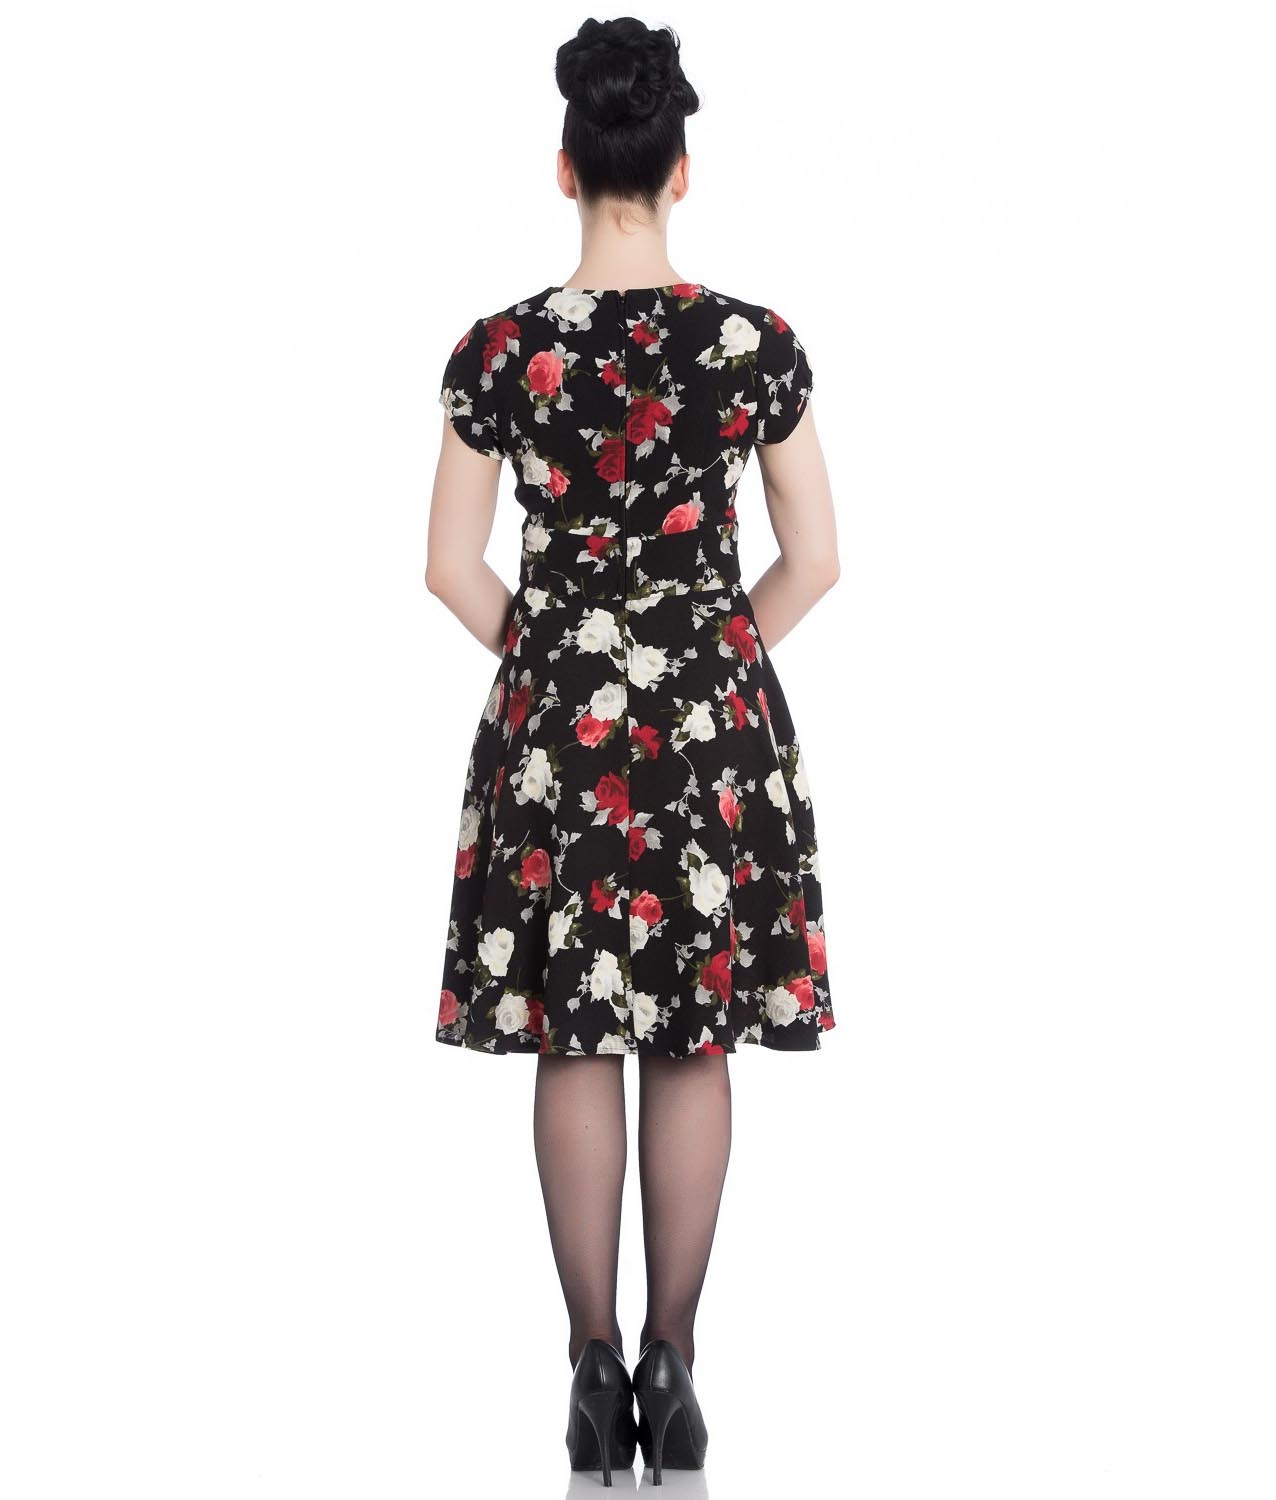 Hell-Bunny-40s-50s-Elegant-Pin-Up-Dress-VALENTINA-Black-Roses thumbnail 9